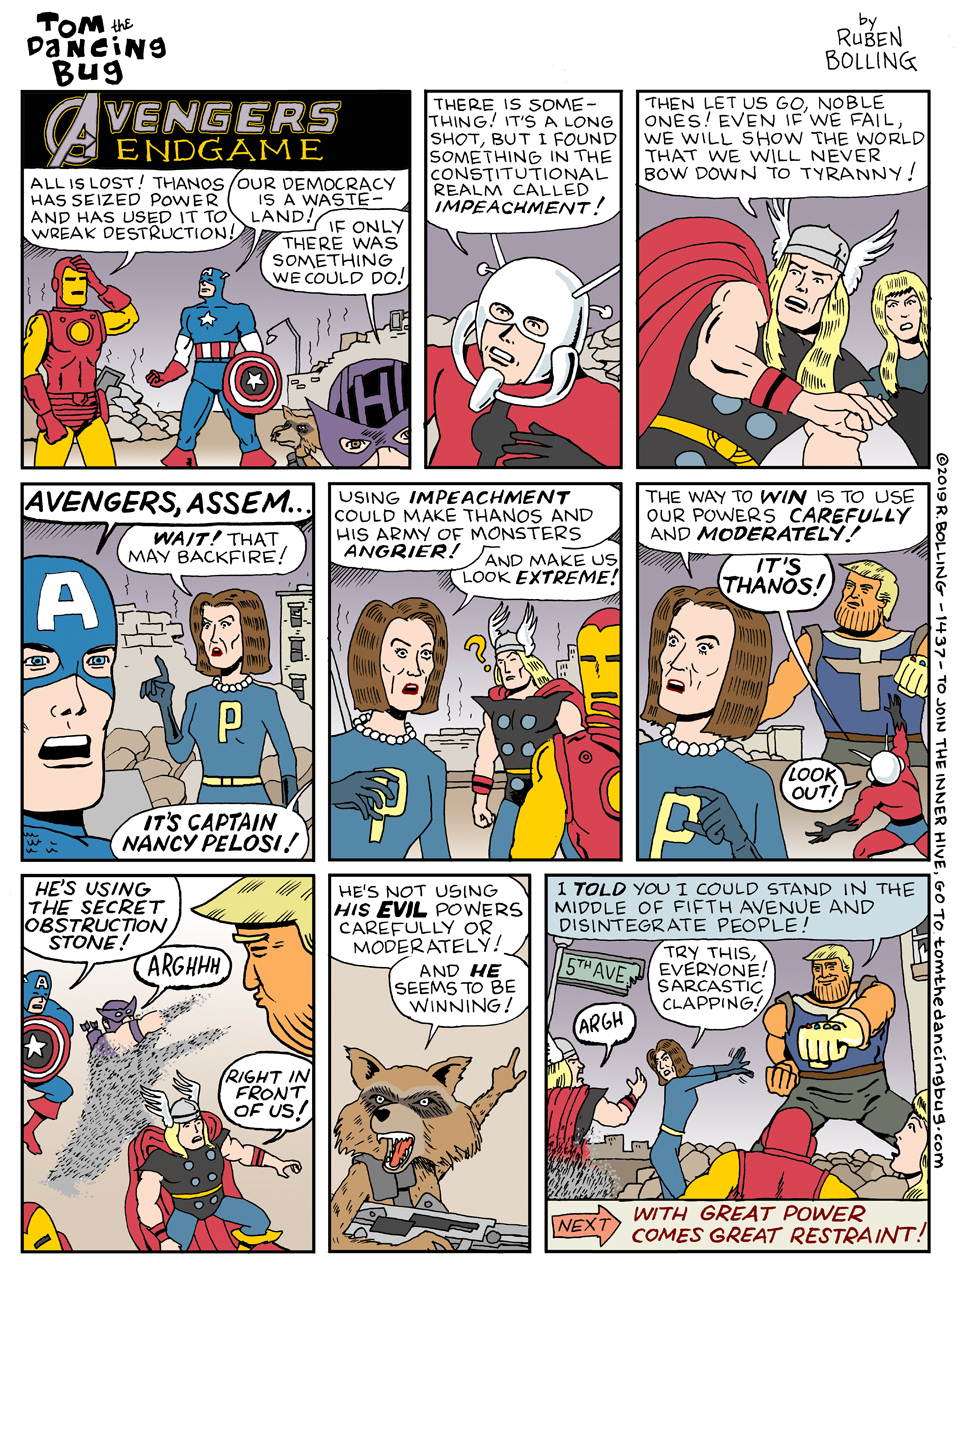 IMAGE(https://media.boingboing.net/wp-content/uploads/2019/05/1437cbCOMIC-avengers-endgame.jpg)